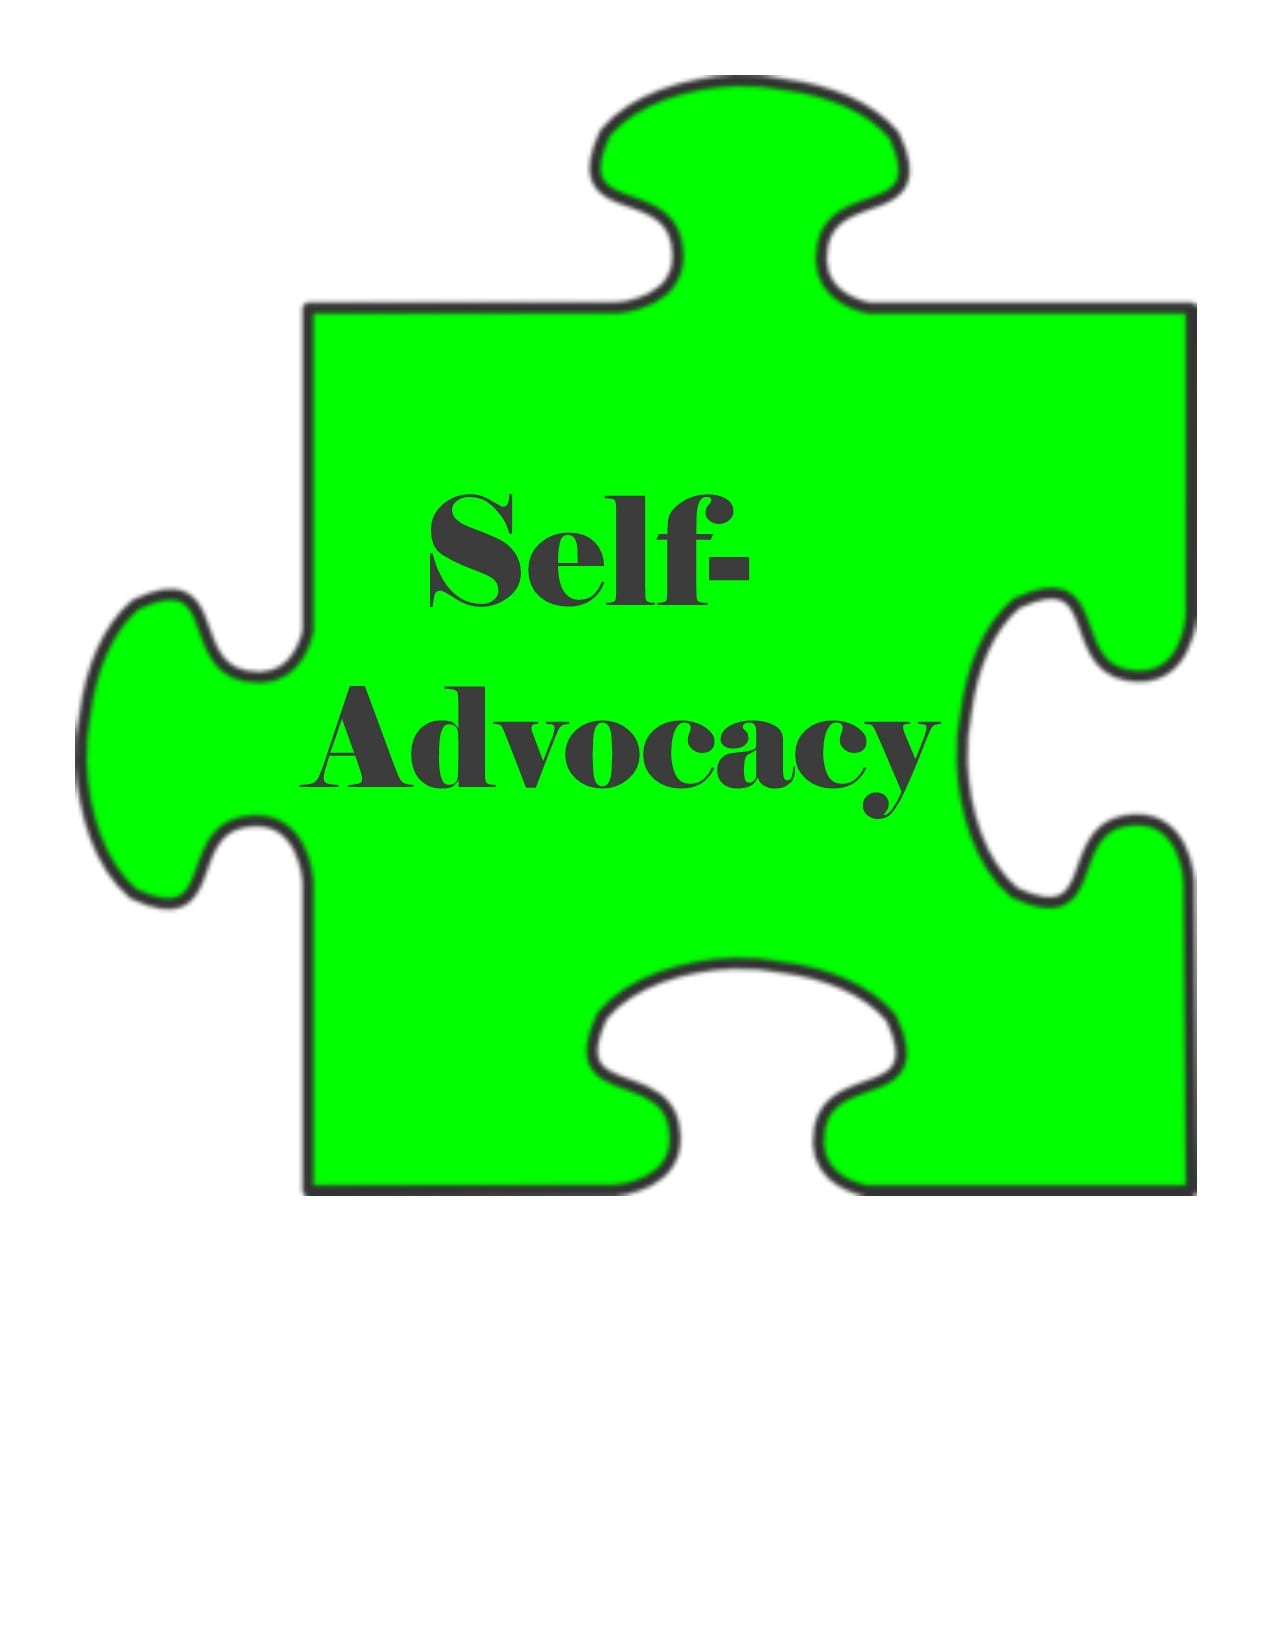 post secondary education important The importance of post secondary education  what we're talking about today the importance of post secondary education 1 building a movement 2 tools you can use 3 self advocates as leader of change 4  the importance of a local champion.